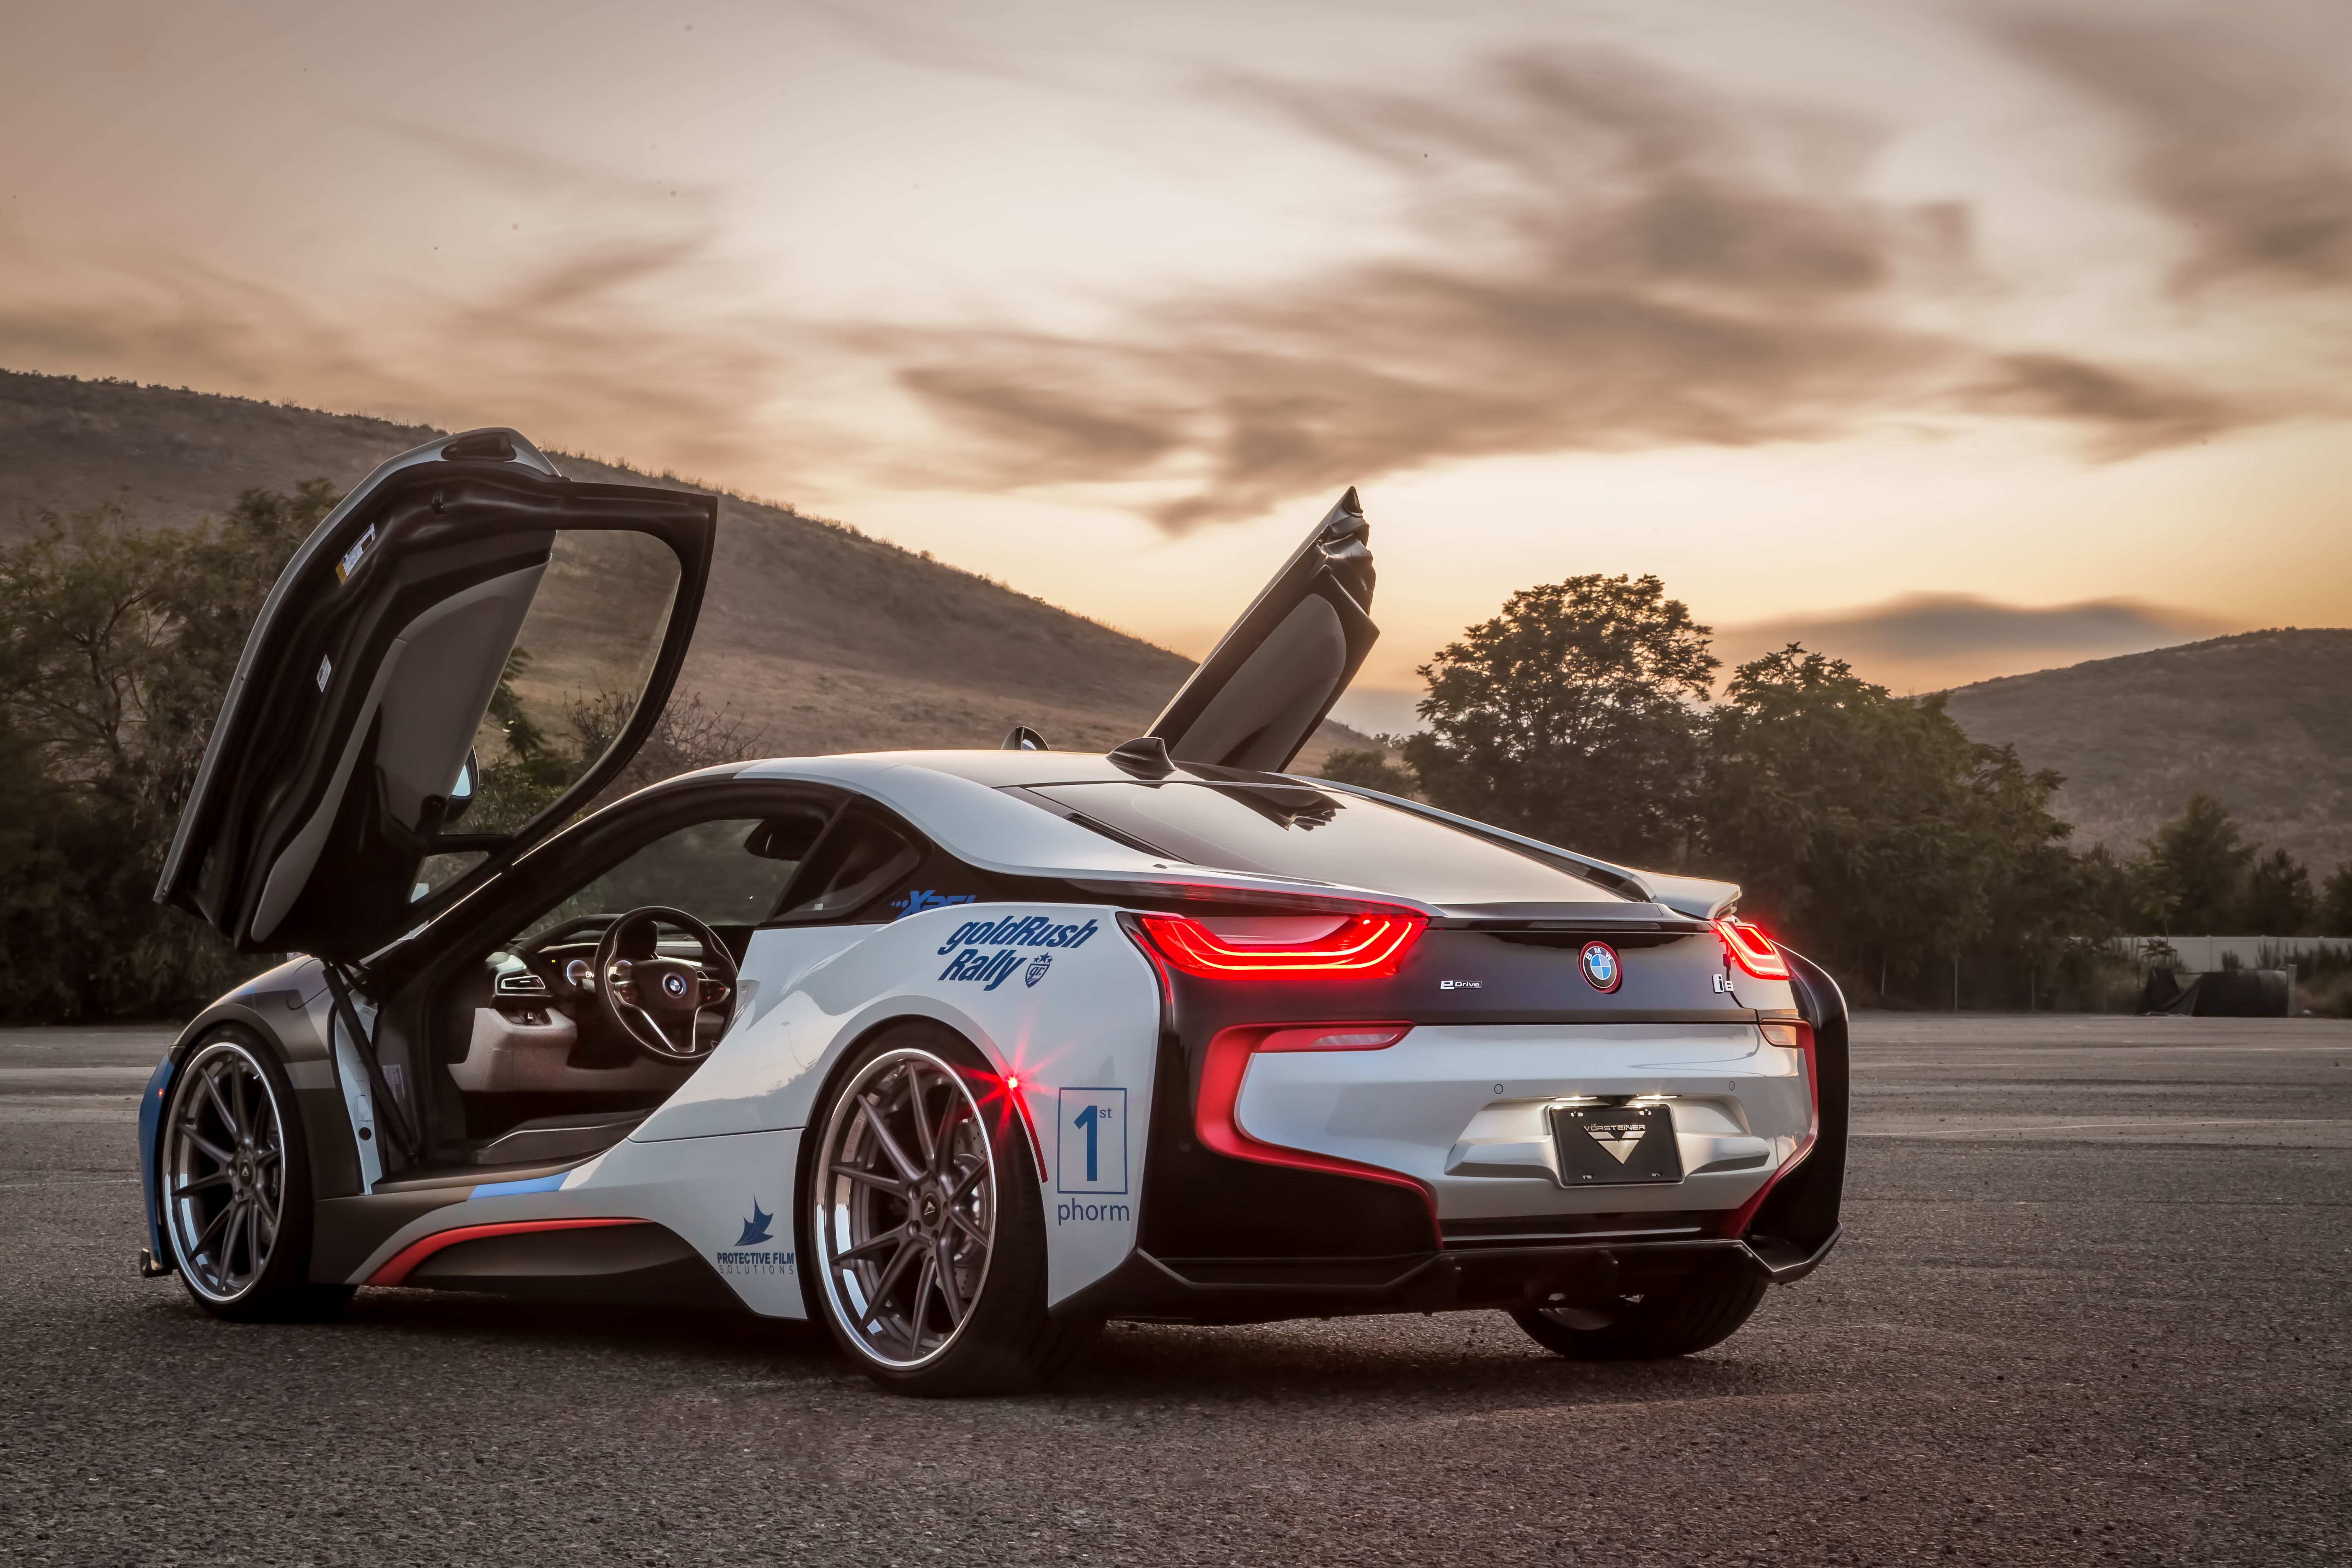 BMW I8 Wallpapers, Pictures, Image